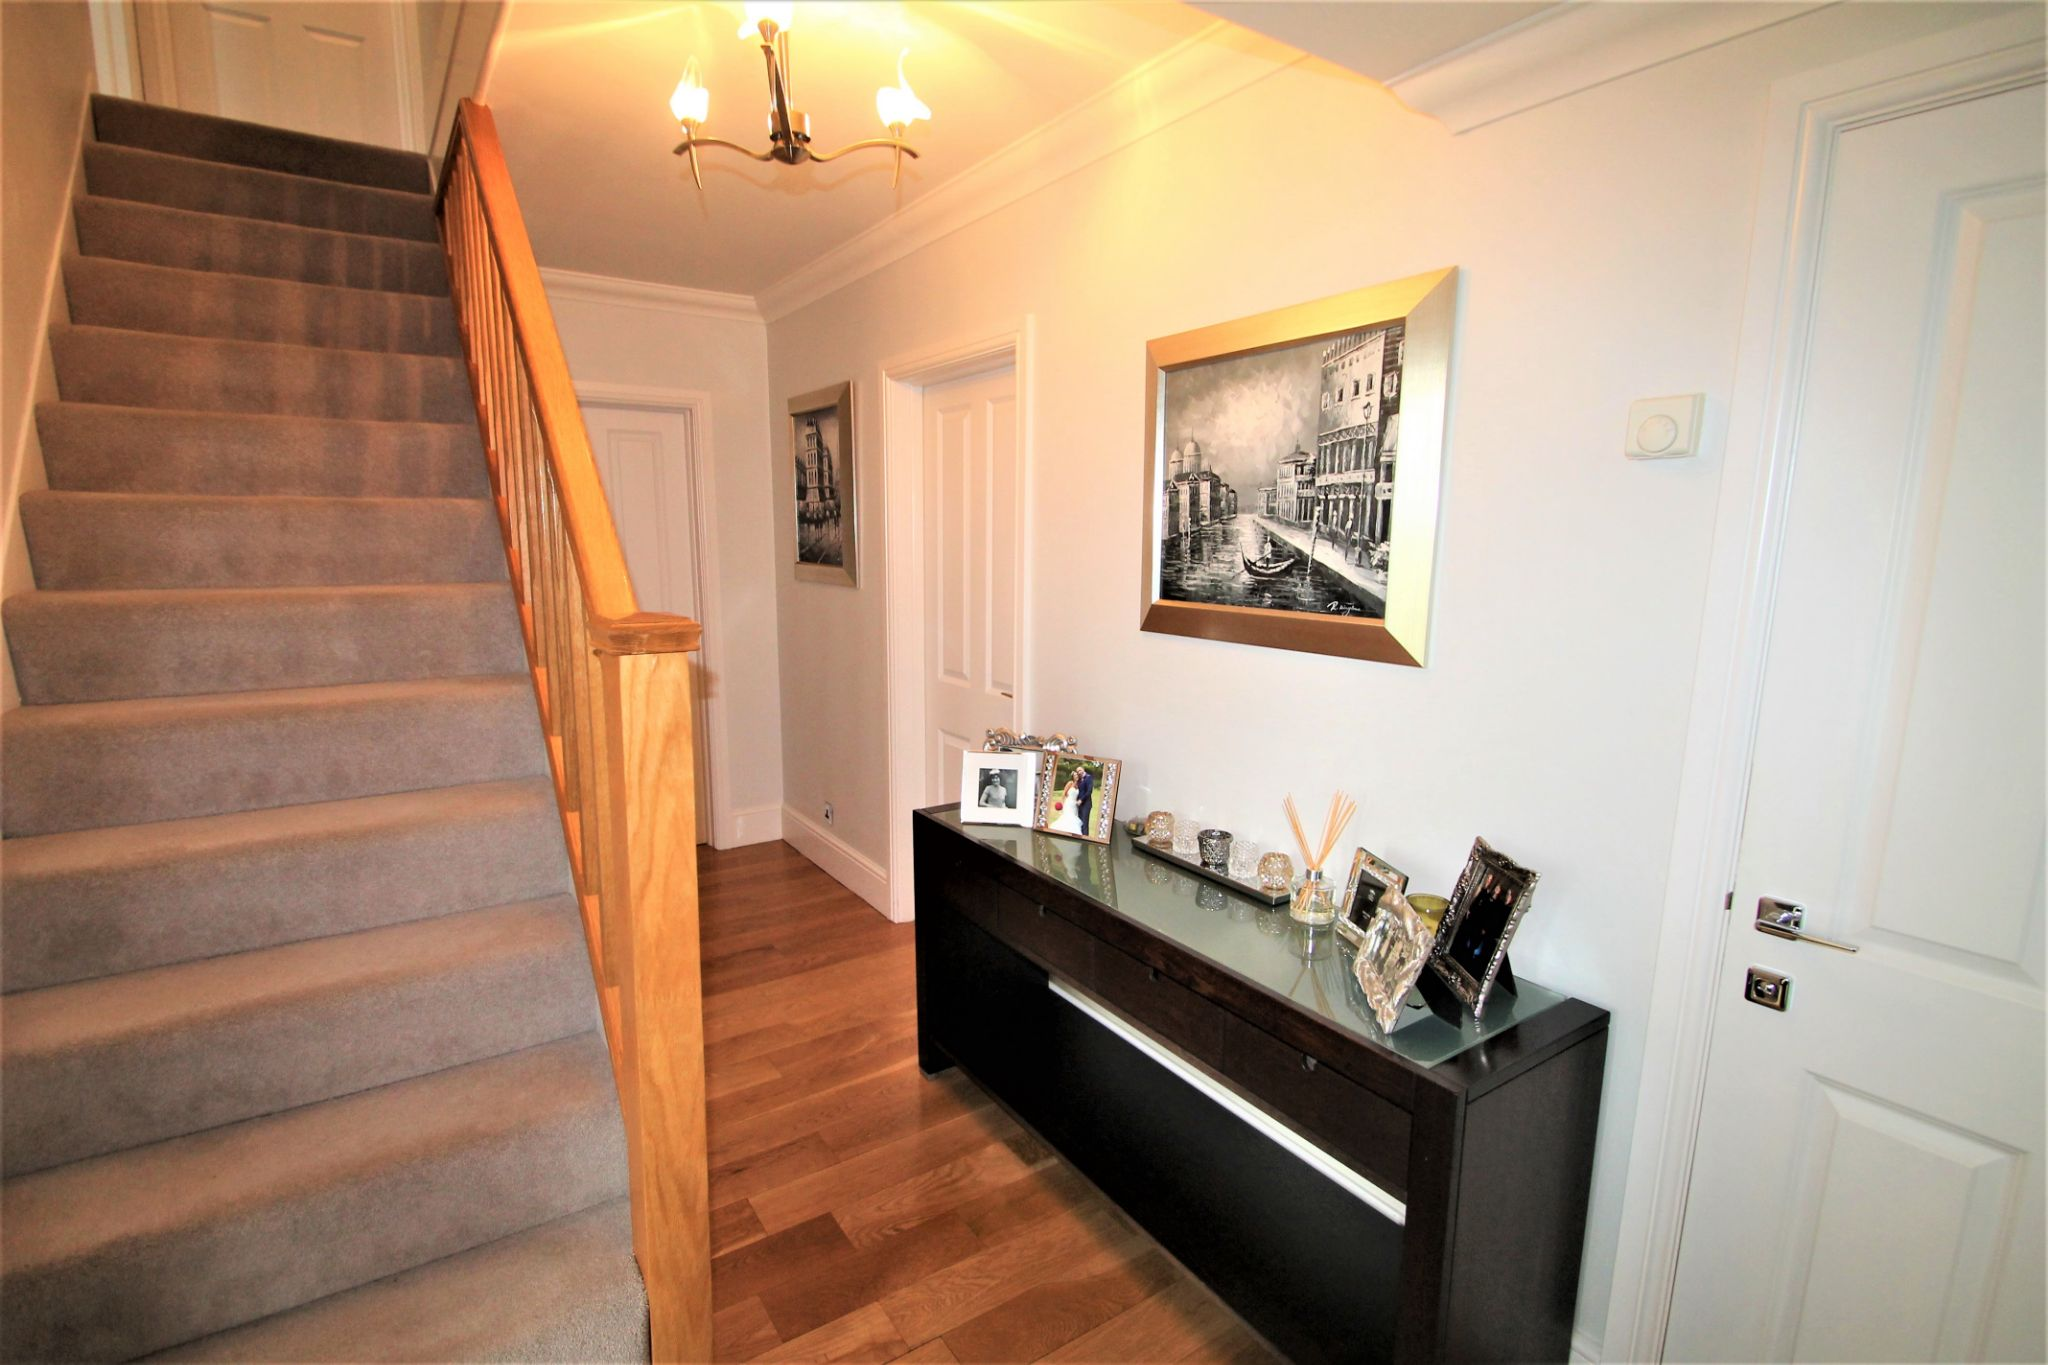 5 Bedroom Detached House For Sale - Entrance Hallway